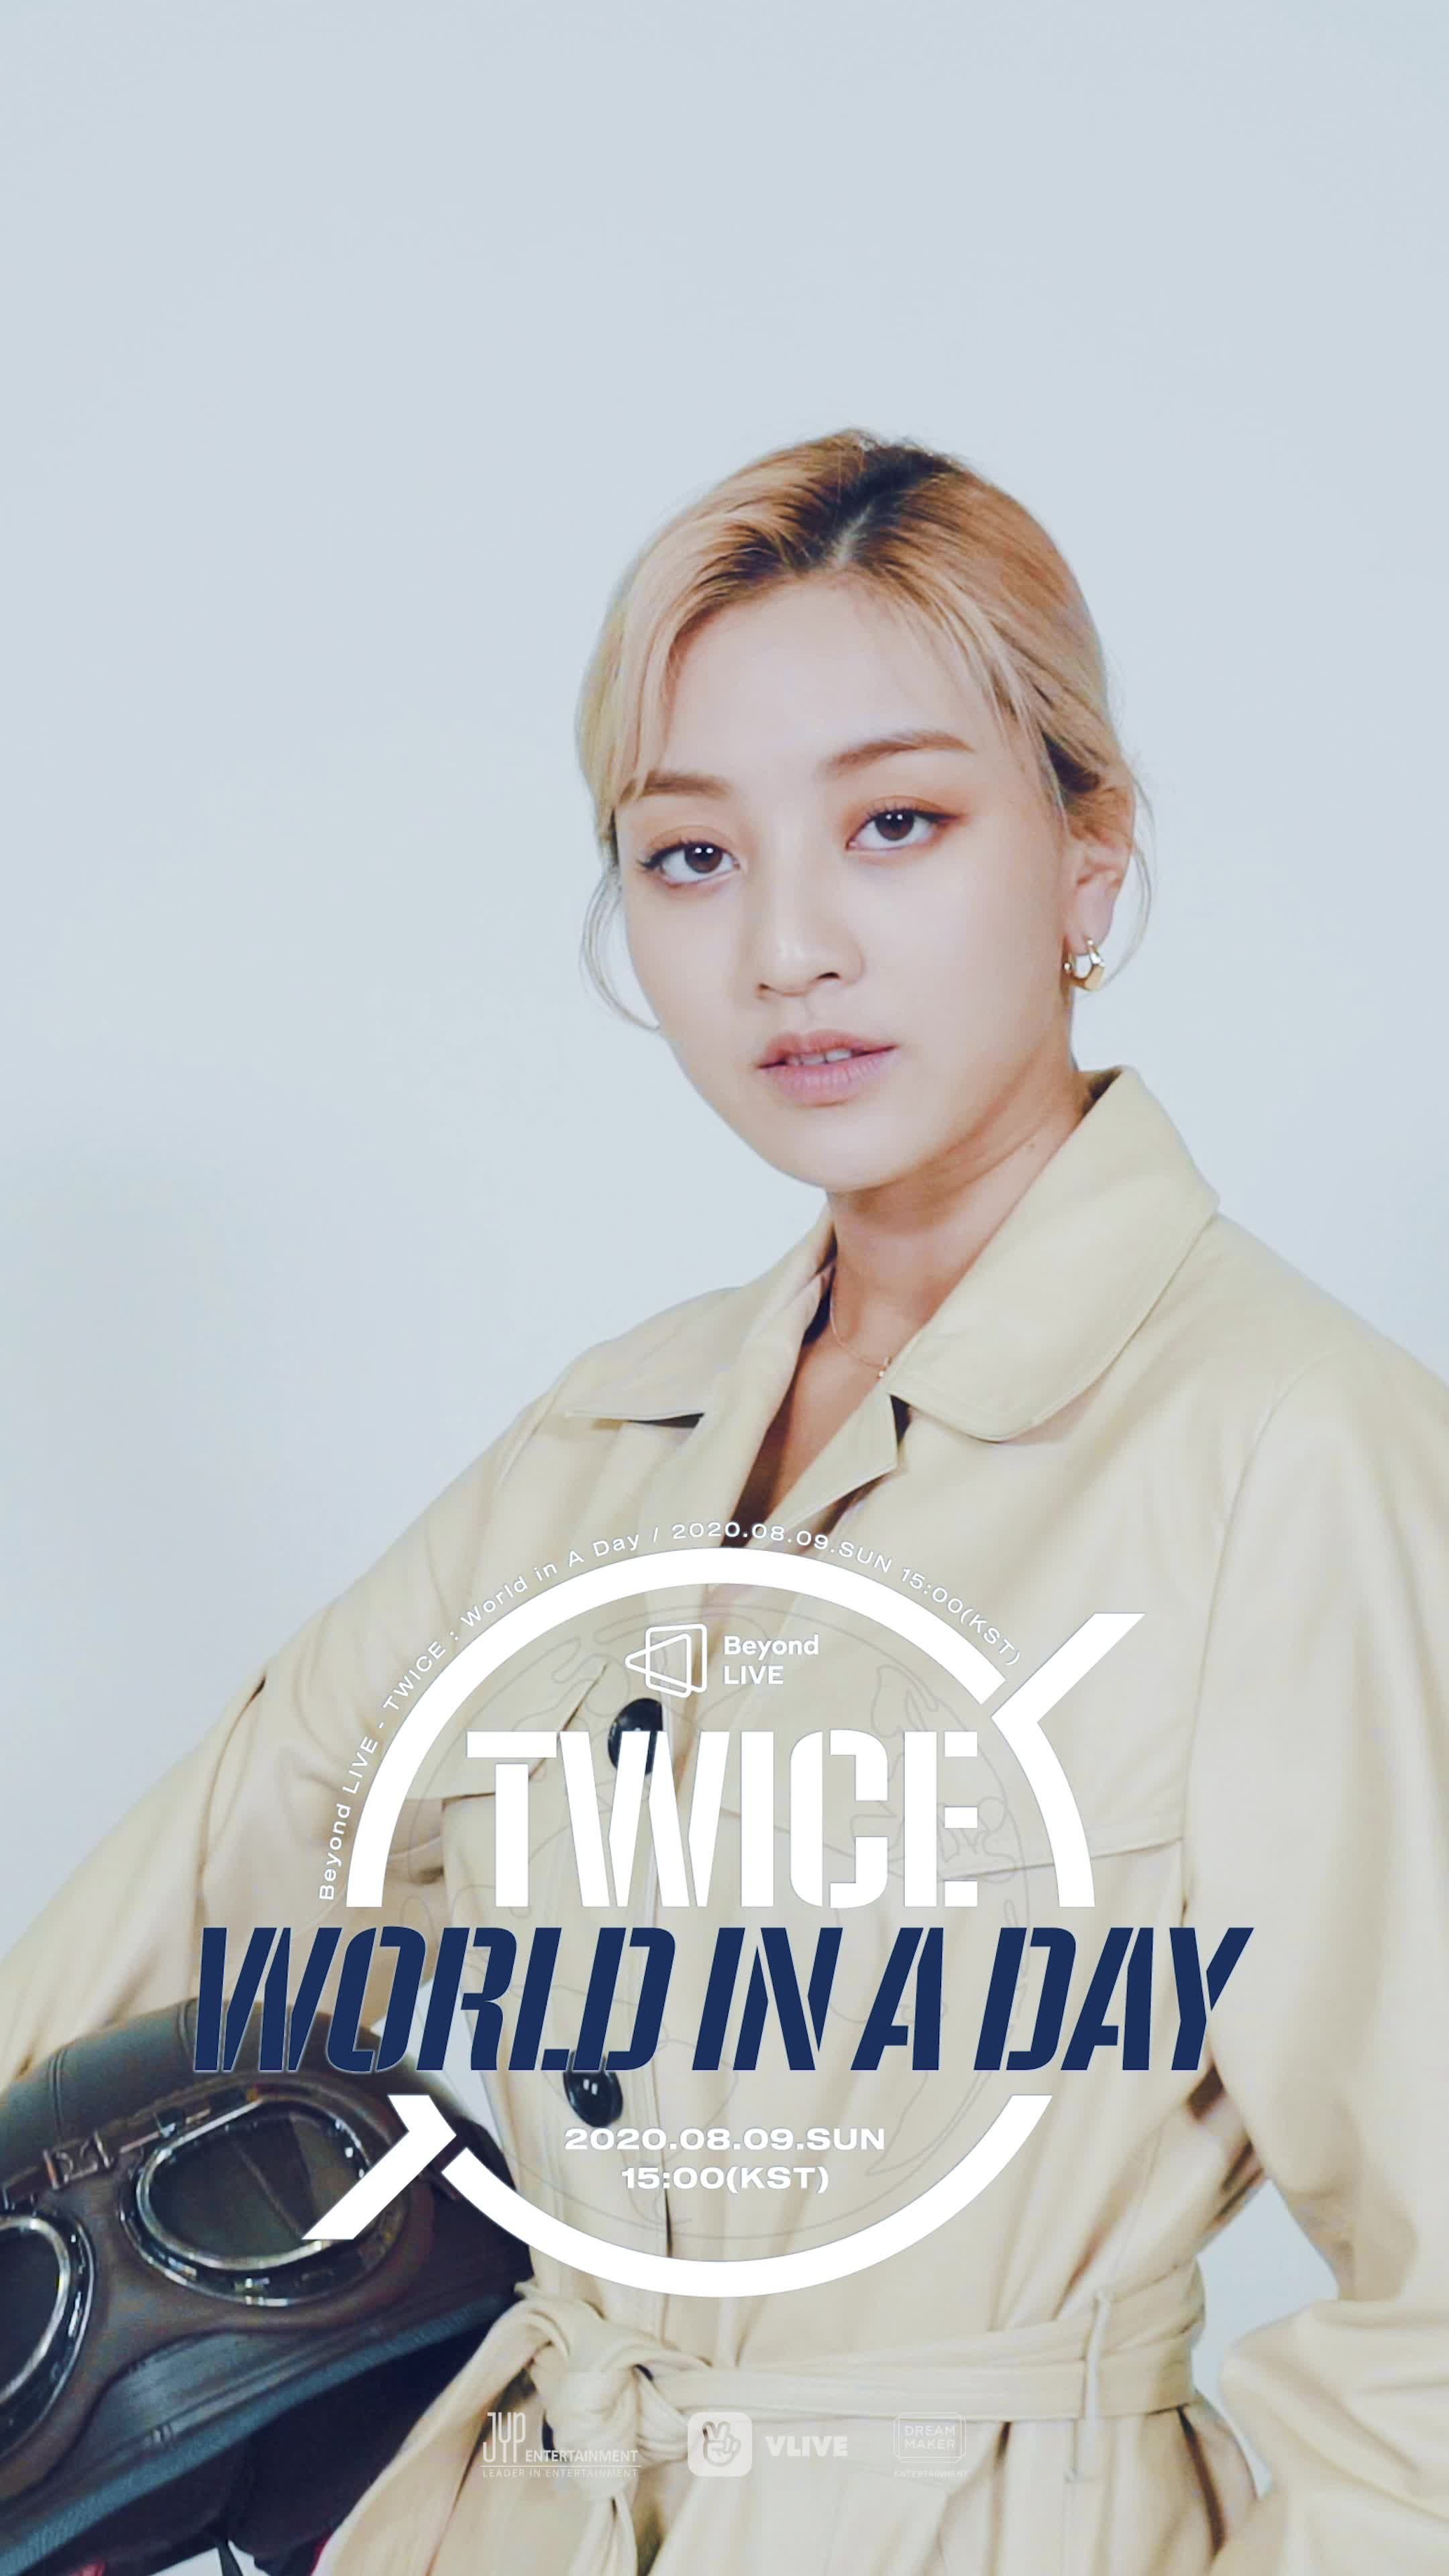 [Beyond LIVE - TWICE : World in A Day] Moving Poster - JIHYO